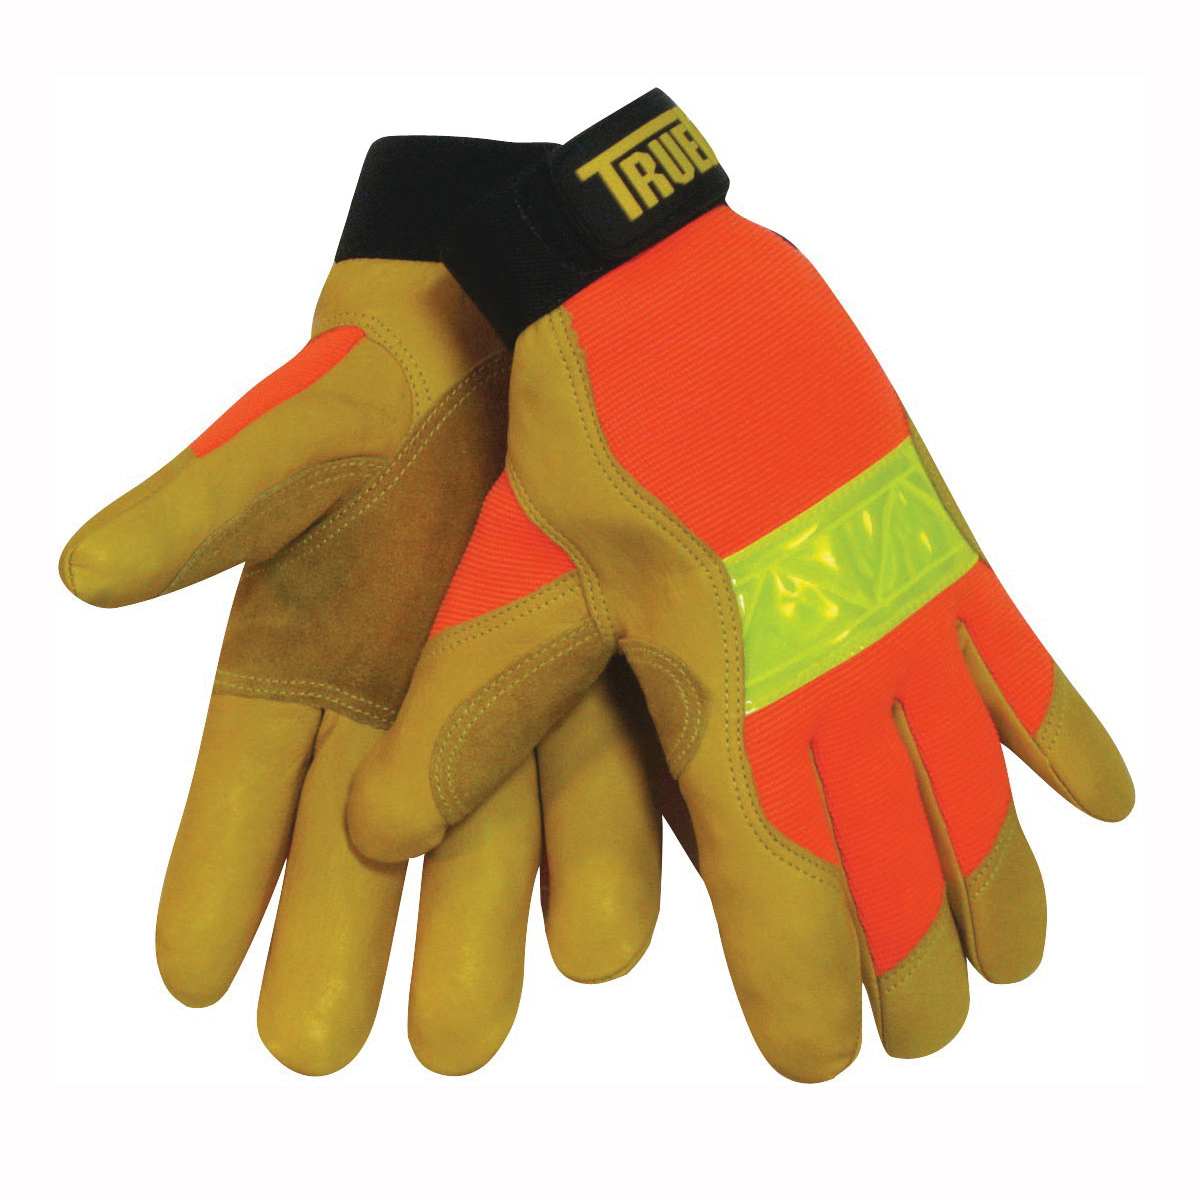 Tillman™ TrueFit™ 1476 Premium Grade General Purpose Gloves, Leather Palm, Grain Cowhide Leather Palm, Spandex®, Gold, Elastic Cuff, Reinforced Thumb